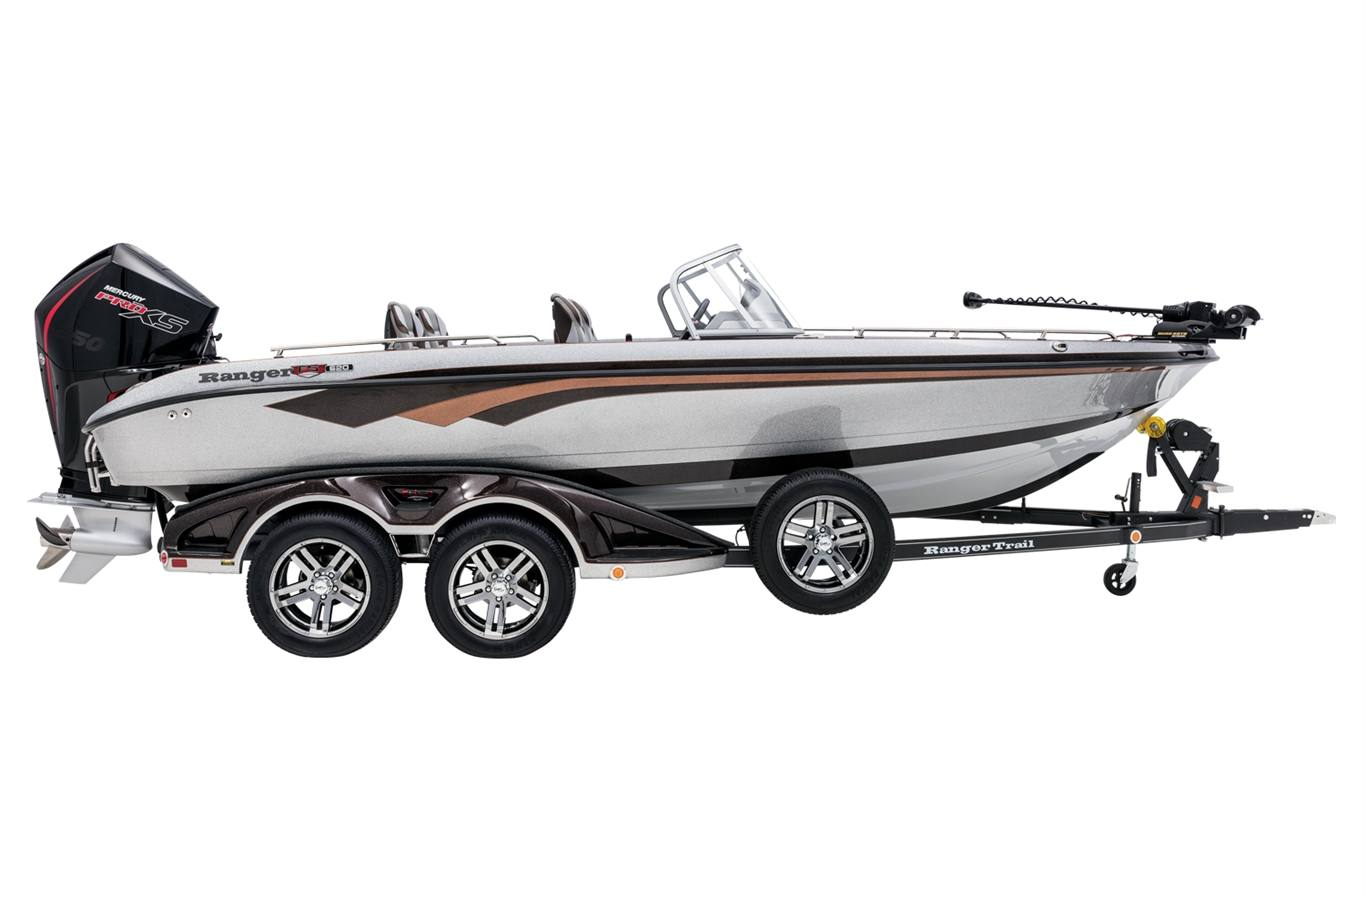 2020 Ranger 620FS Ranger Cup Equipped for sale in Lyme, CT